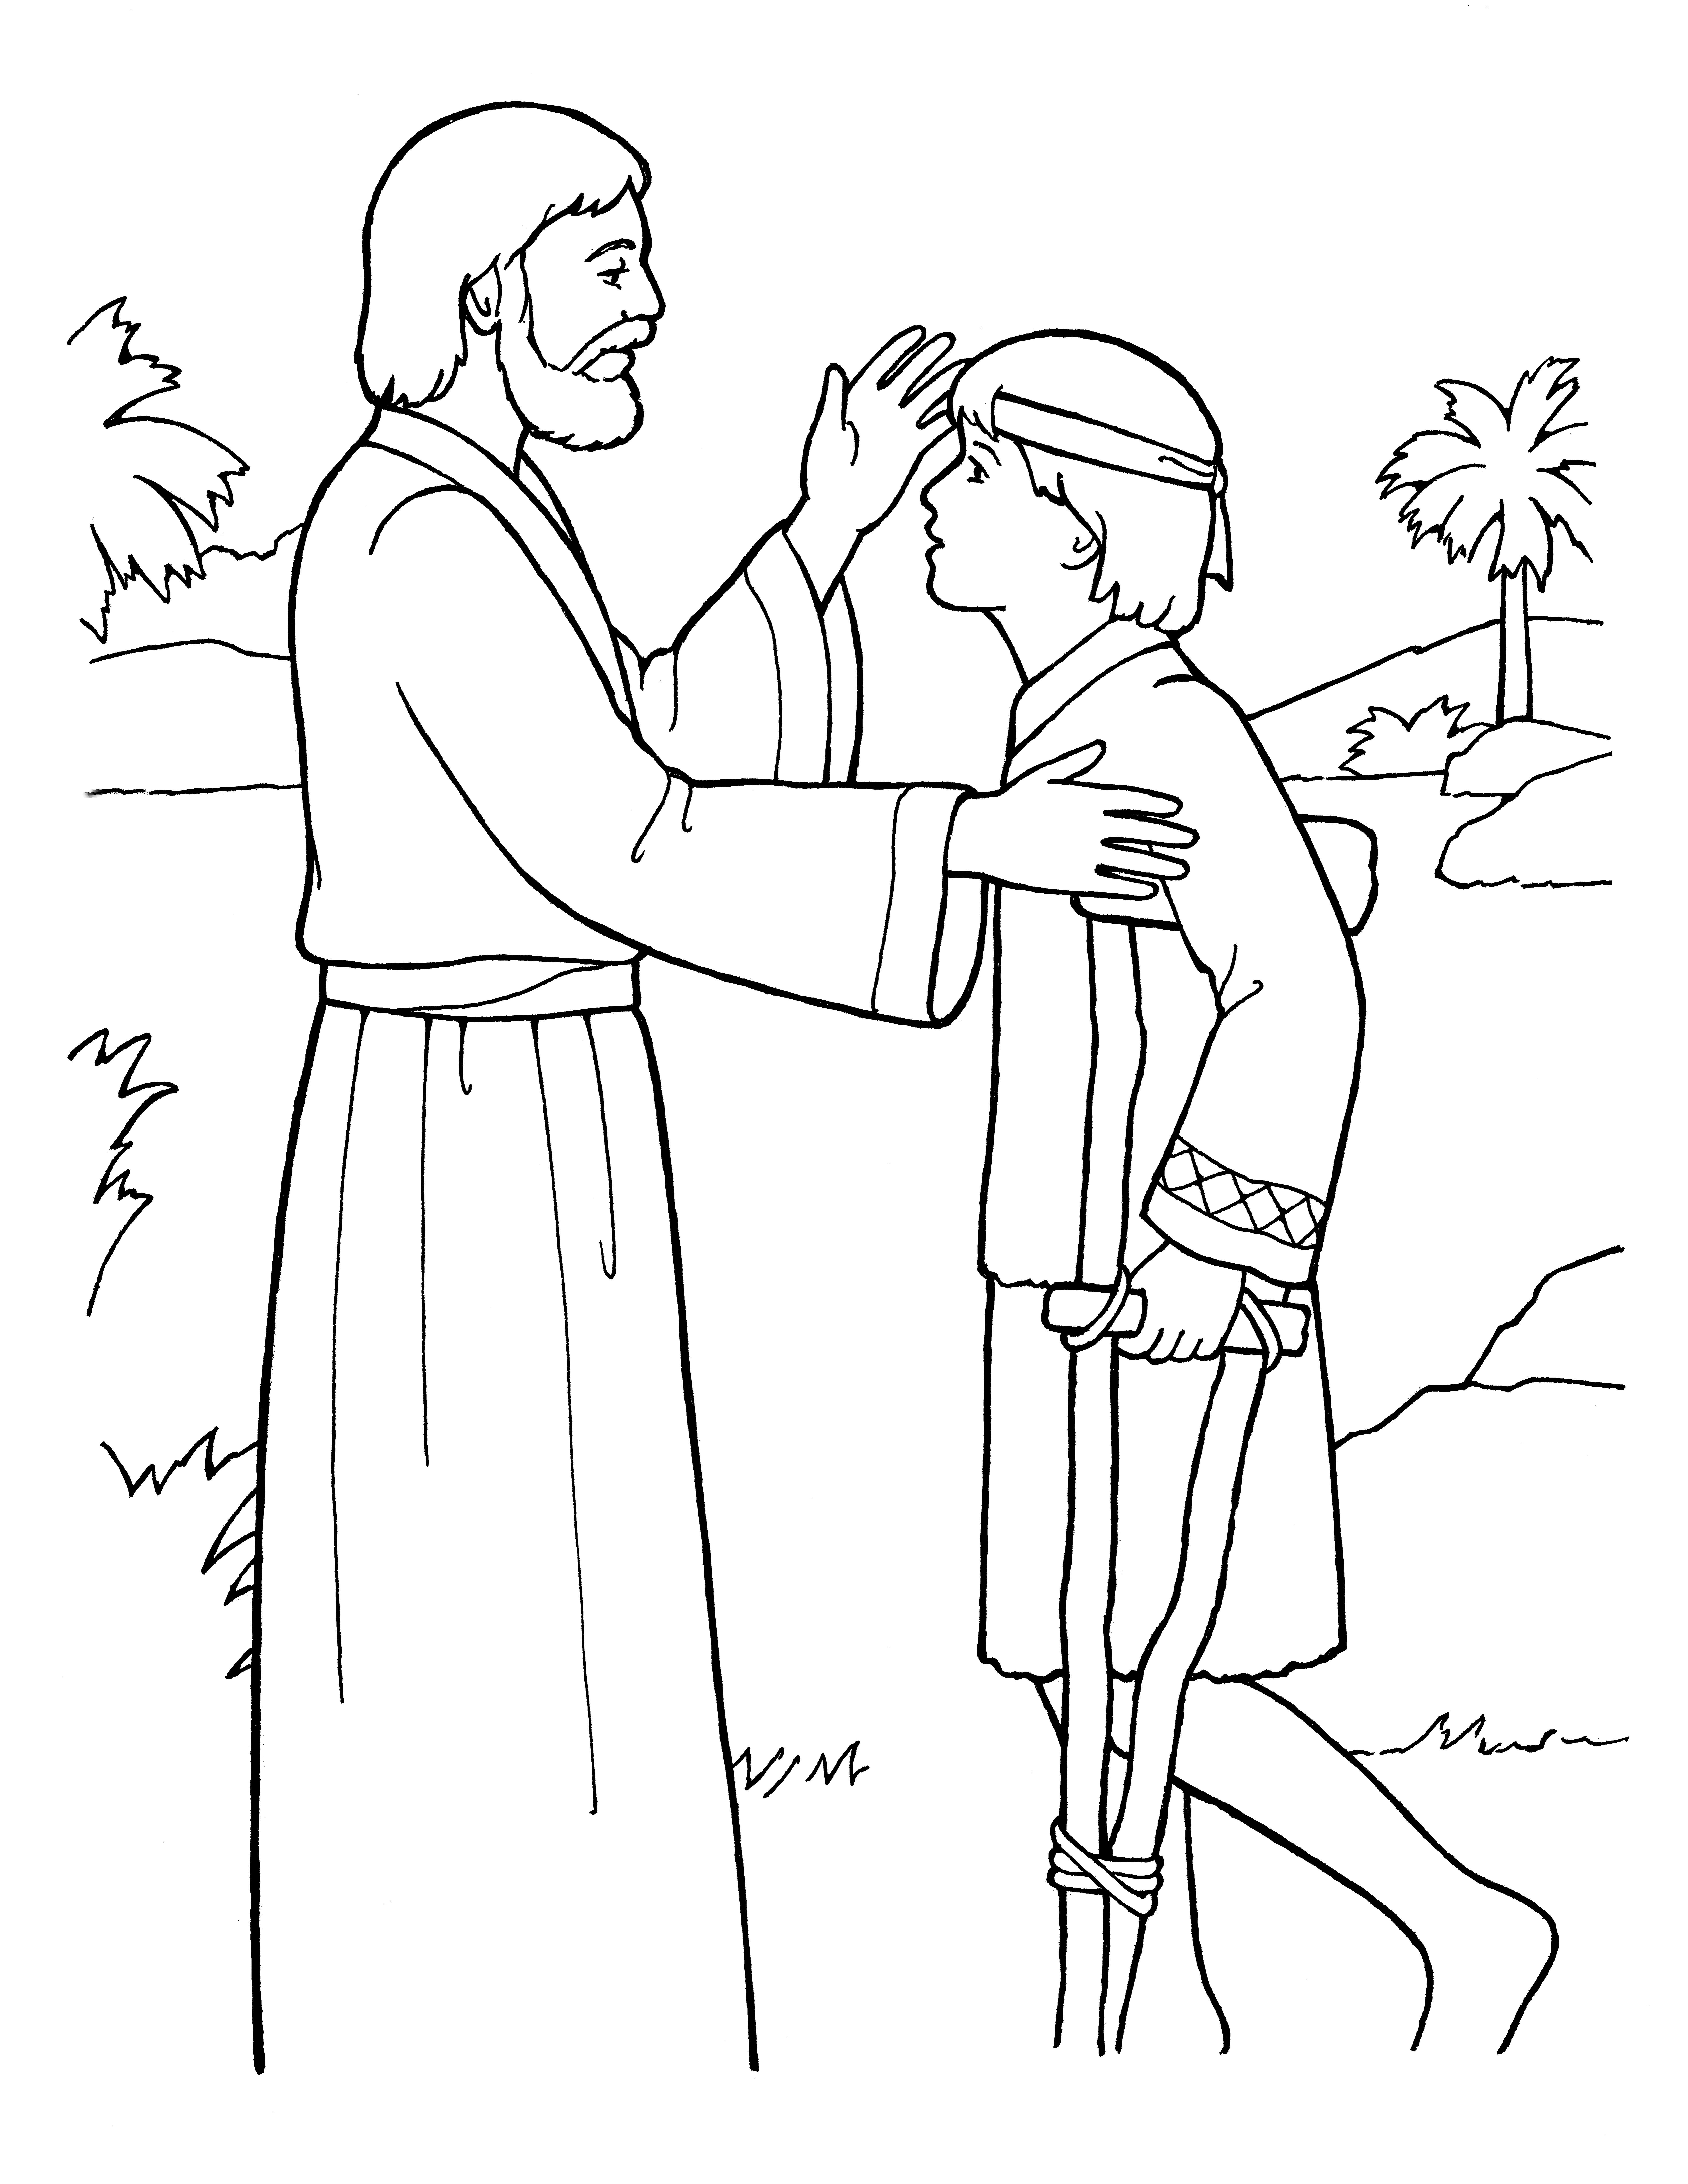 An illustration of Christ healing the sick, from the nursery manual Behold Your Little Ones (2008), page 95.